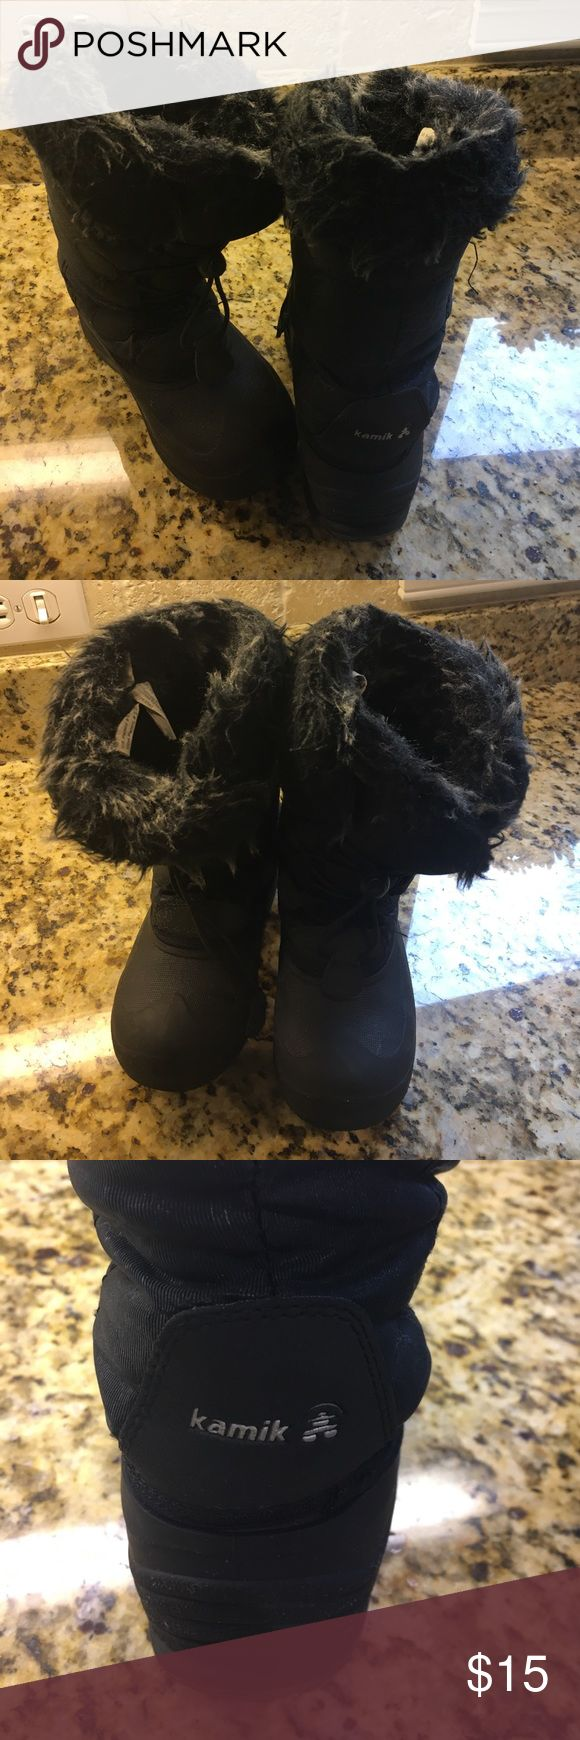 Kamik winter boots for kids Black winter boots made by Kamik from Nordstrom. Size 13. Great condition! Fur lined inside and top, winter proof and insulted water proof boots! Kamik Shoes Rain & Snow Boots